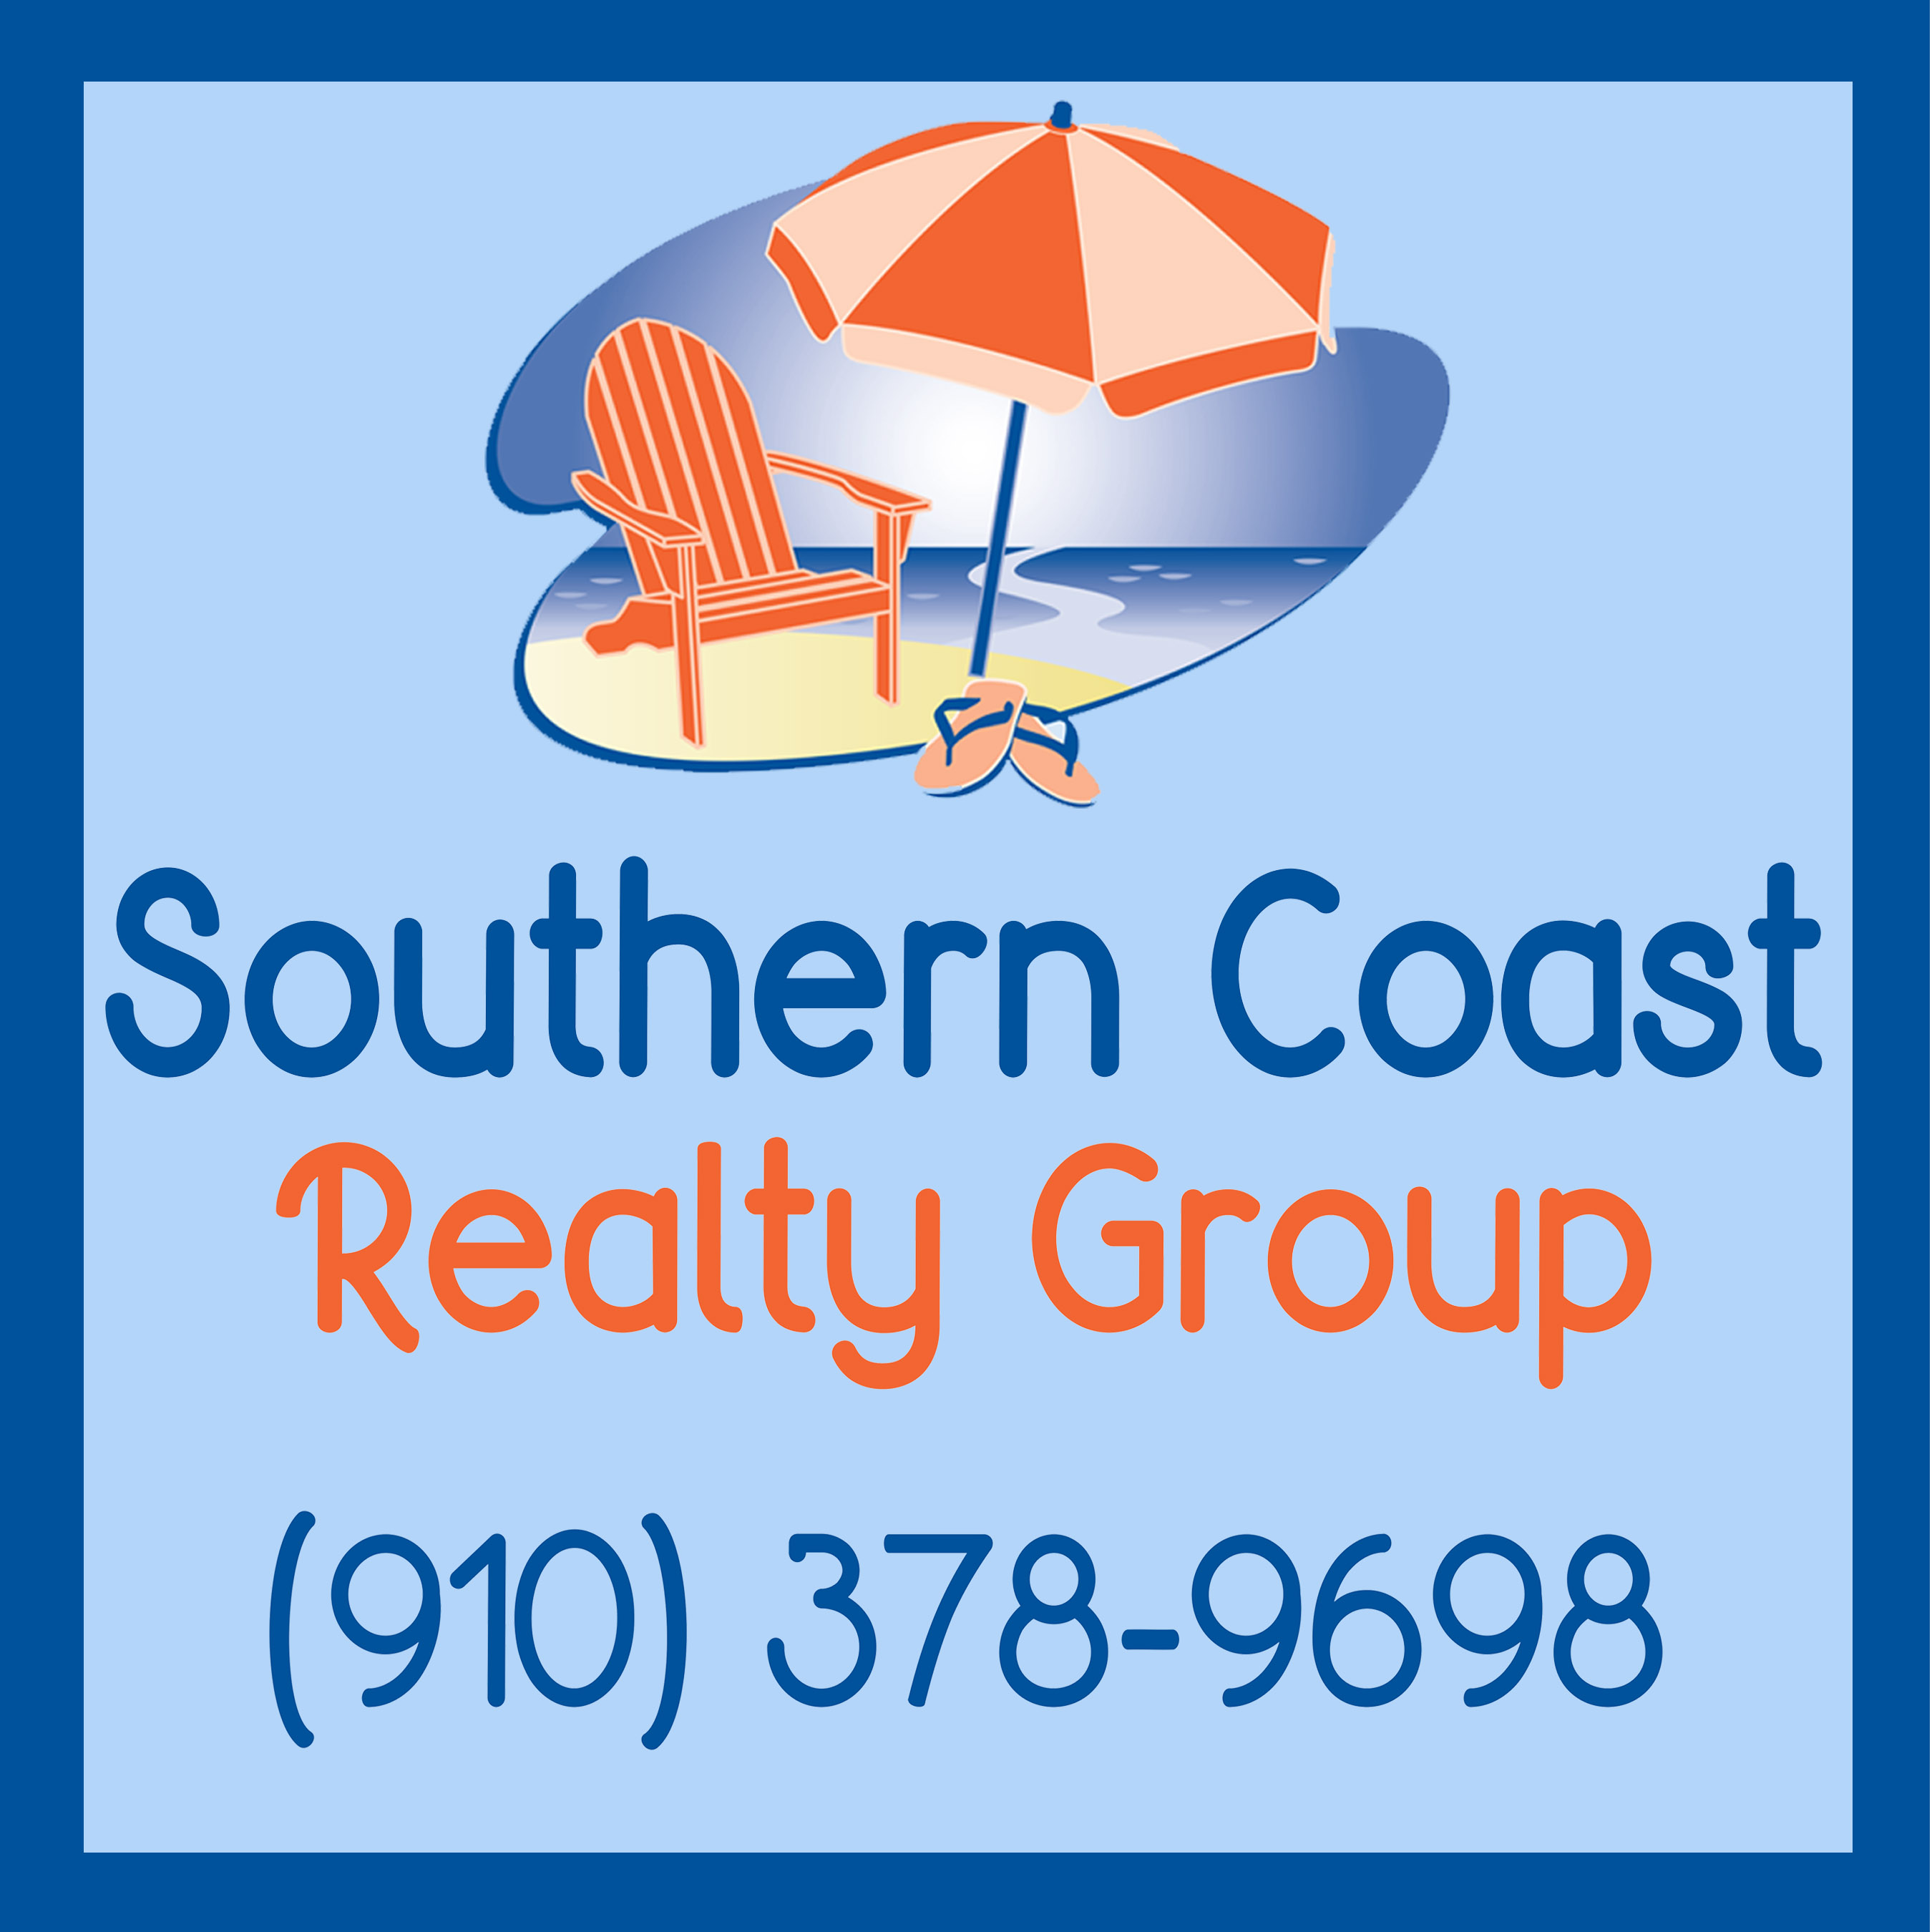 Southern Coast Realty Group